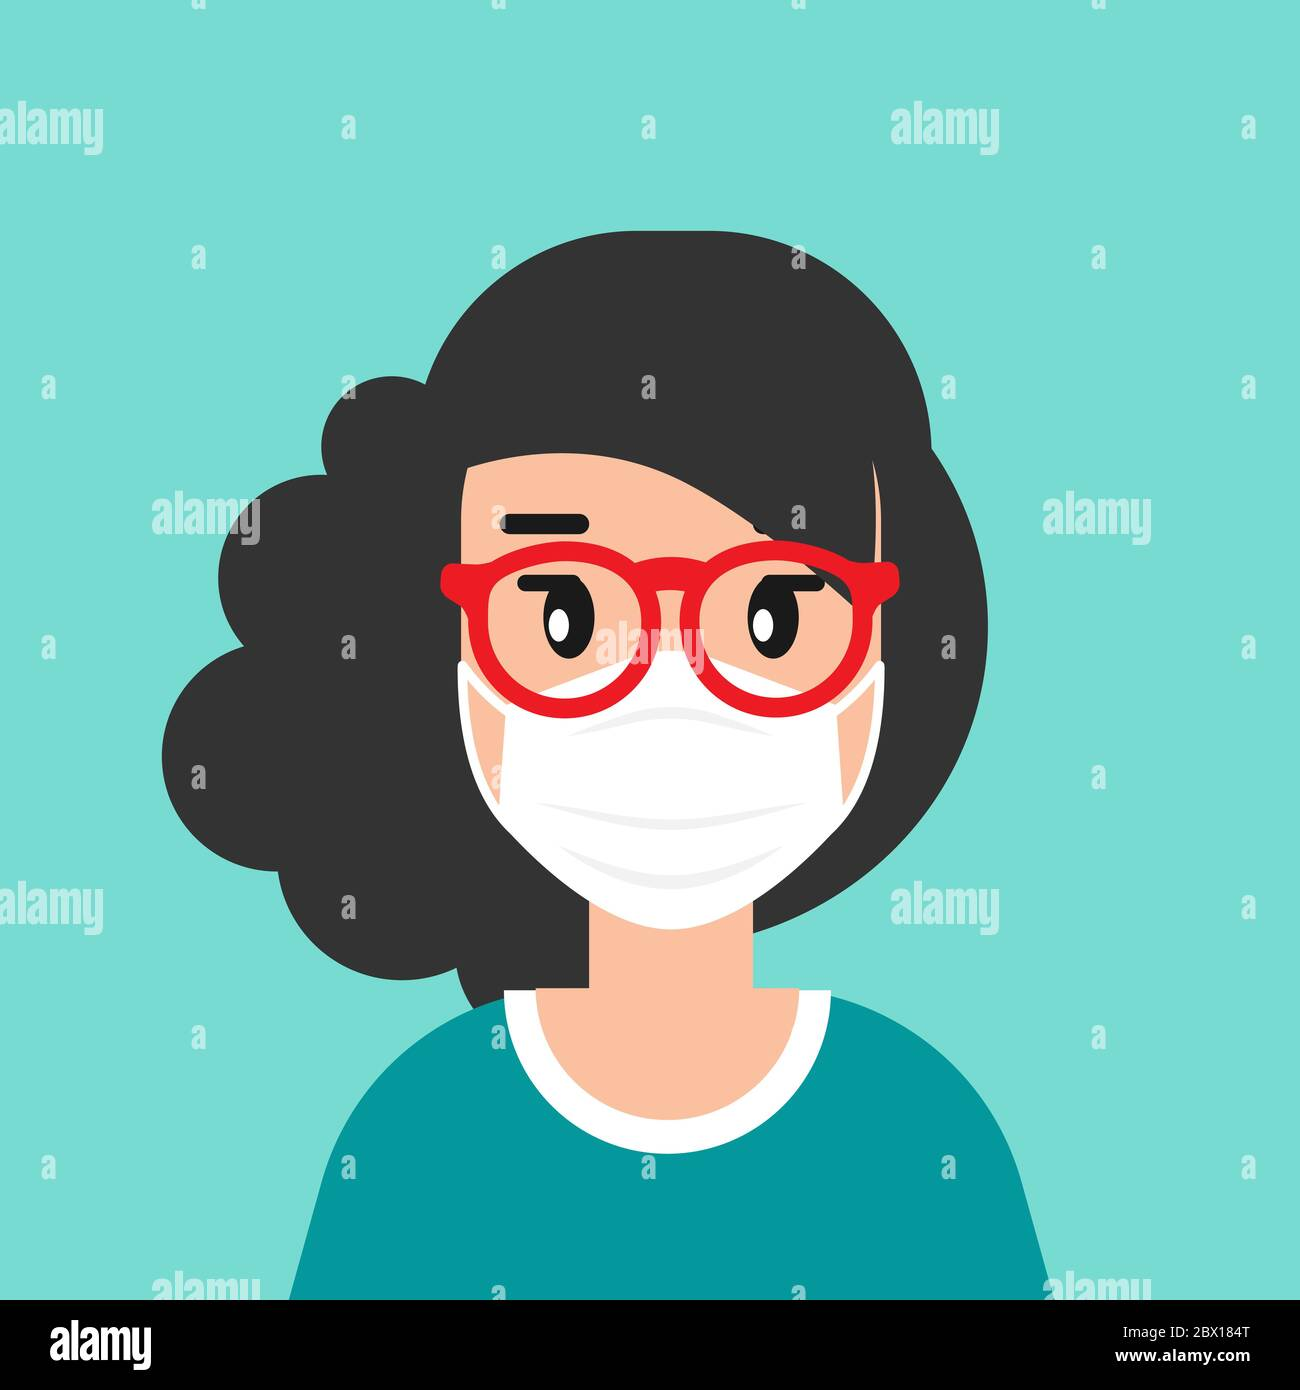 Girl With Medical Mask Avatar Cute Woman With Black Hair Flat